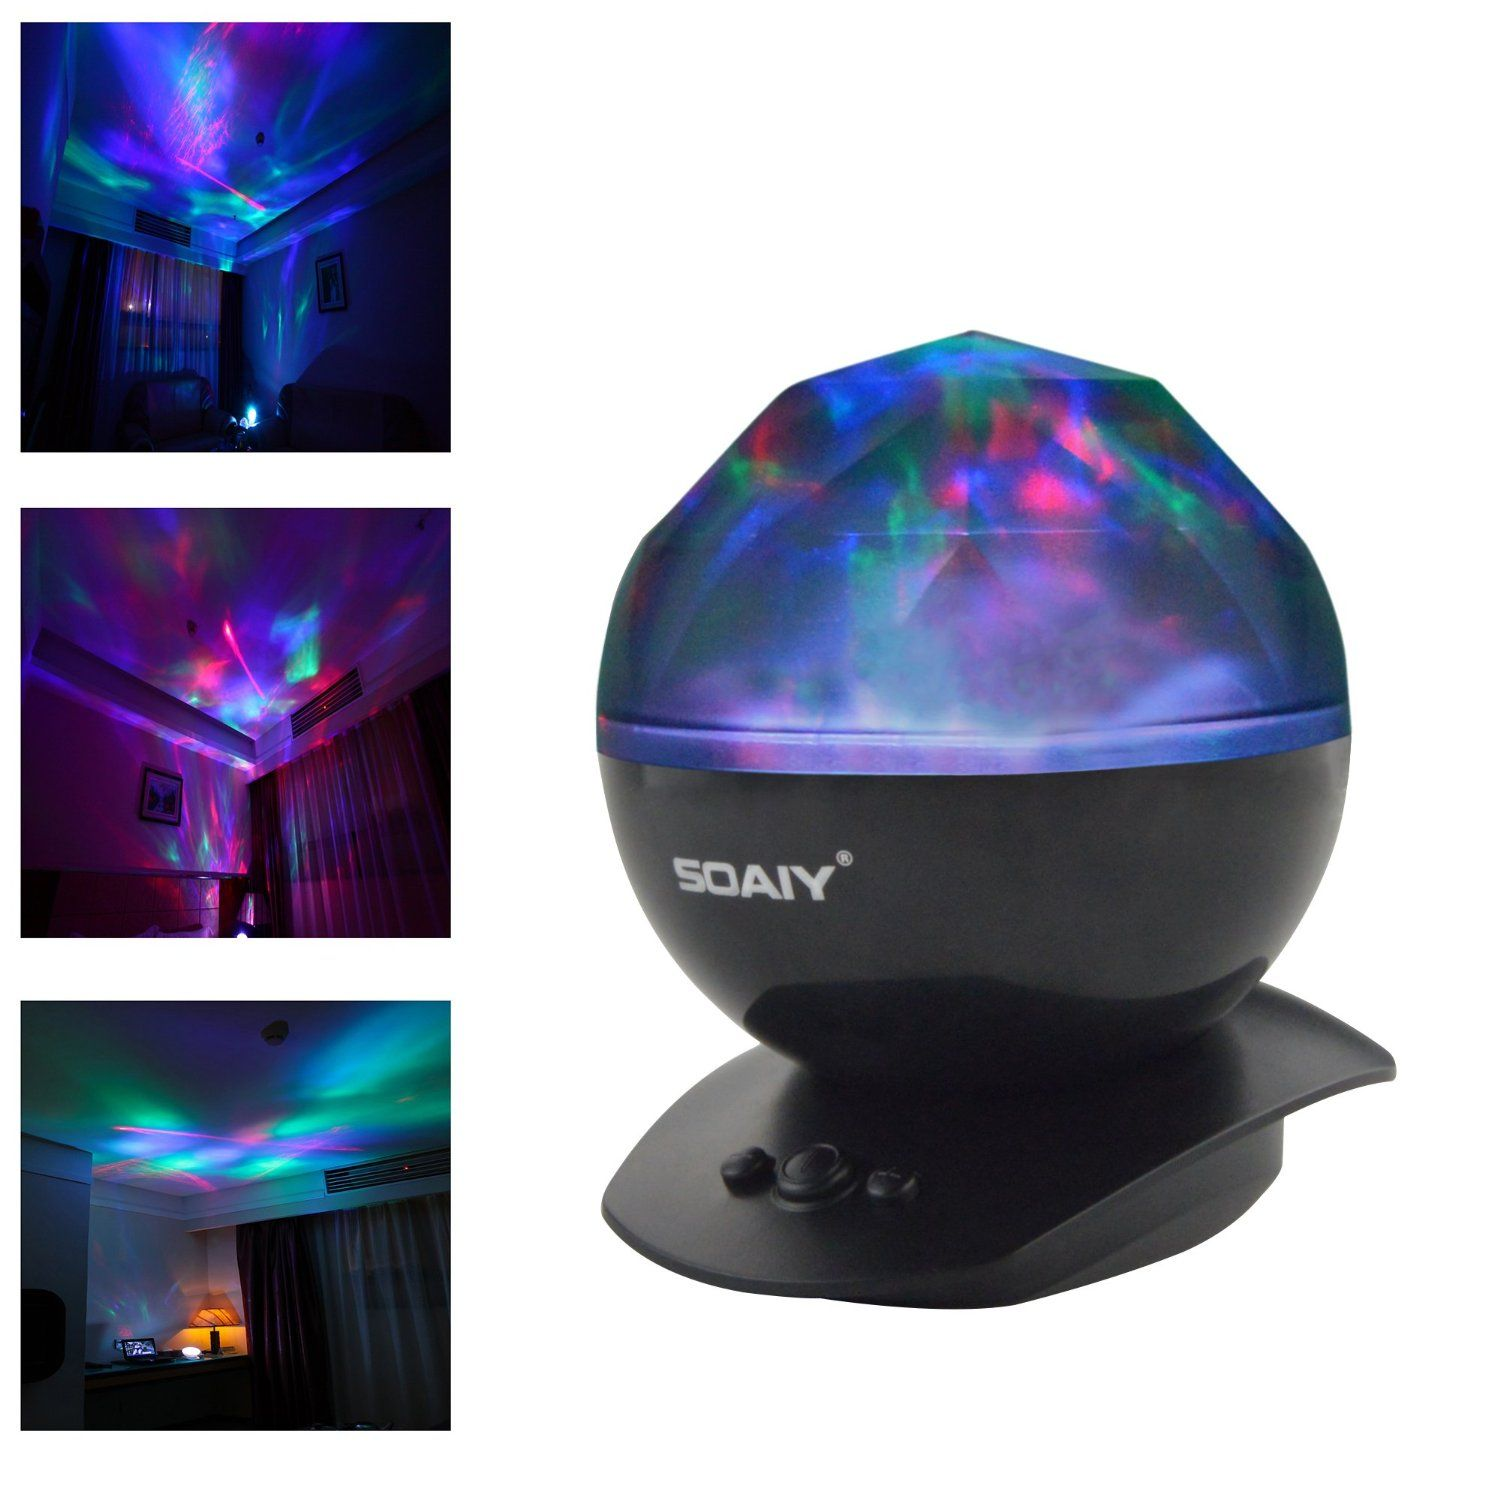 Childrens colour changing lights - Soaiy Color Changing Led Night Light Lamp Realistic Aurora Star Borealis Projector For Children